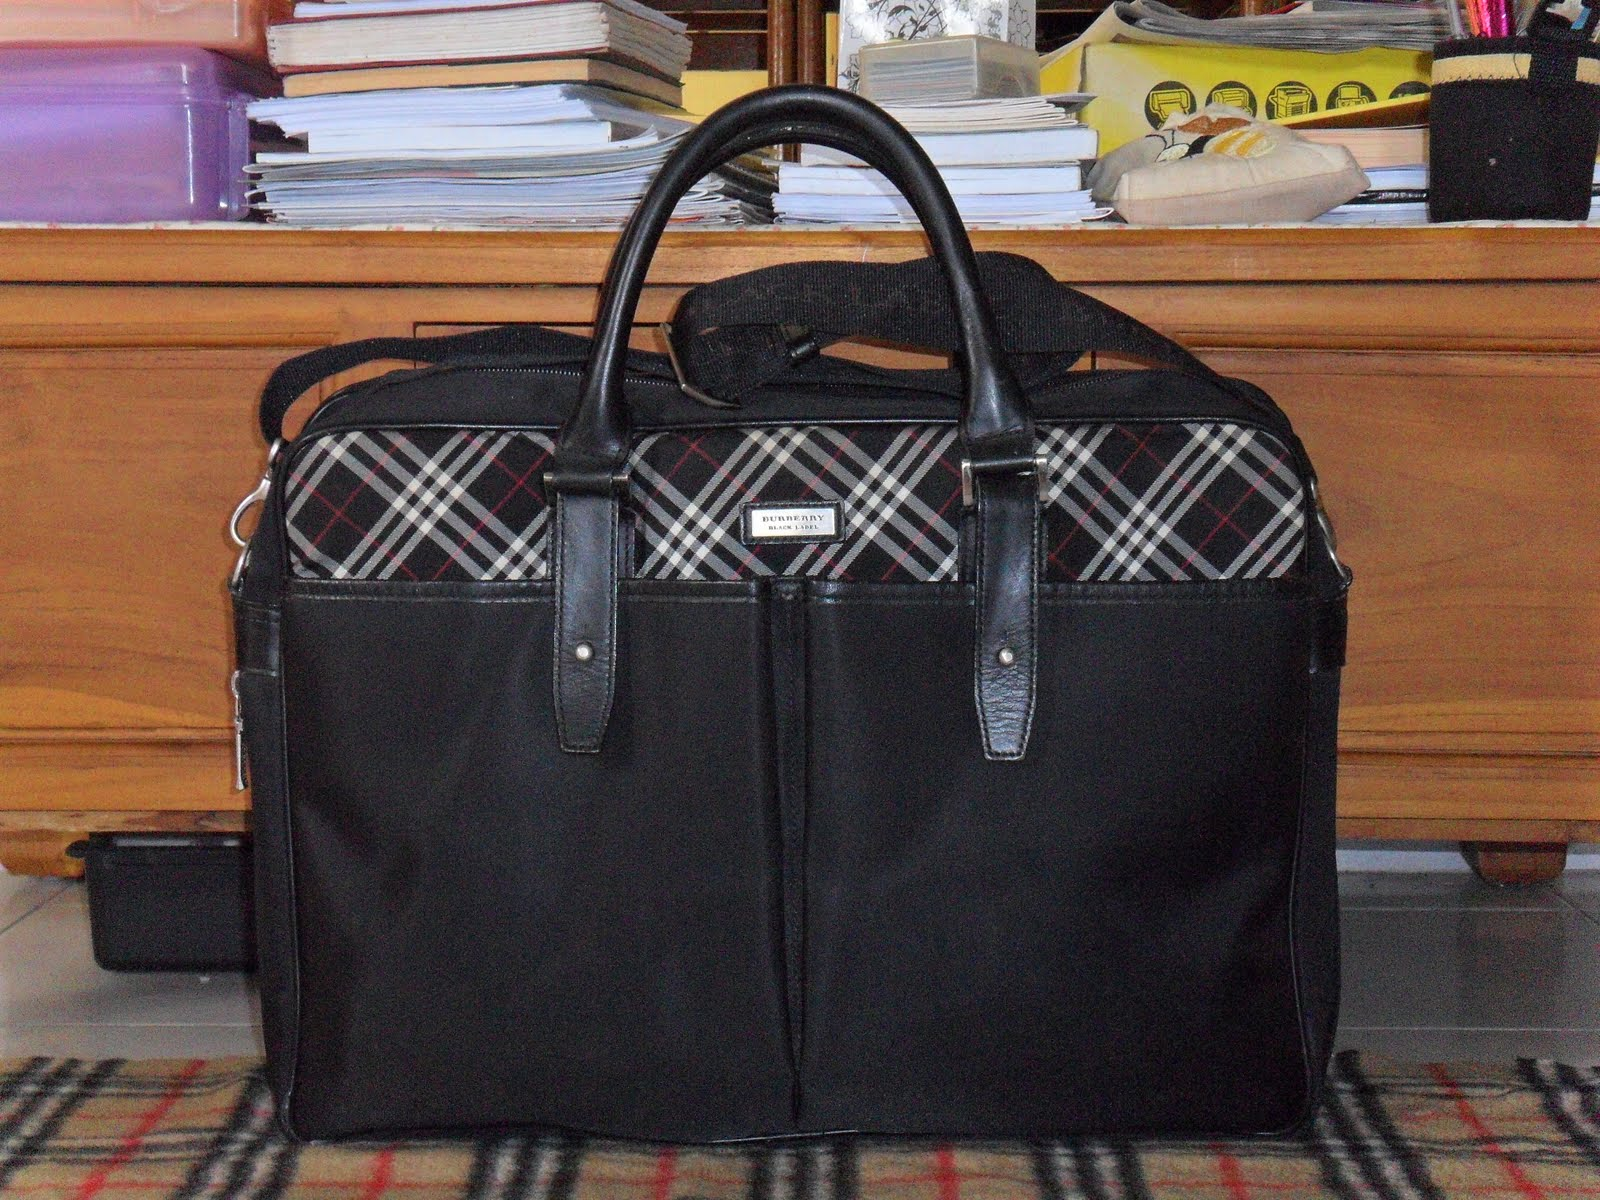 Burberry Black Label Laptop Bag